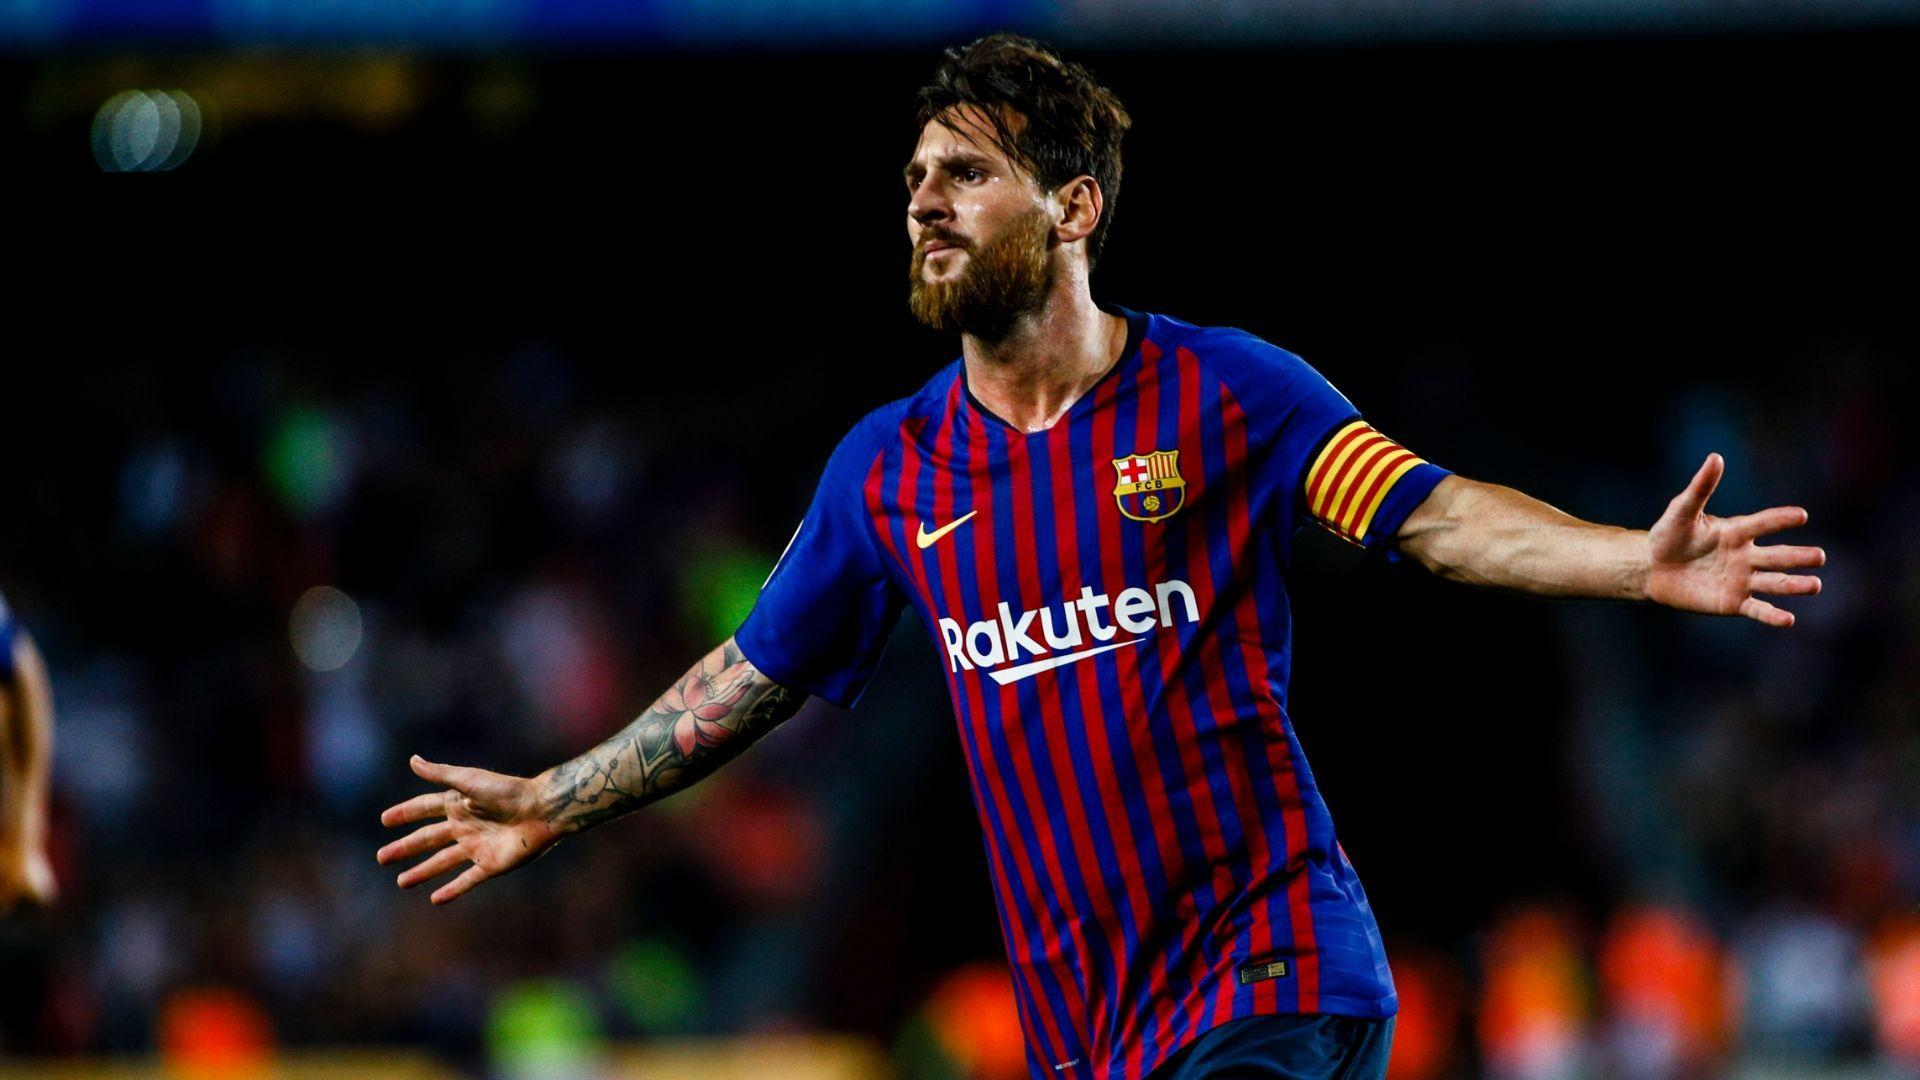 Barcelona 3-0 Alaves: Messi leads Barca into 6,000-goal club - ESPN ...